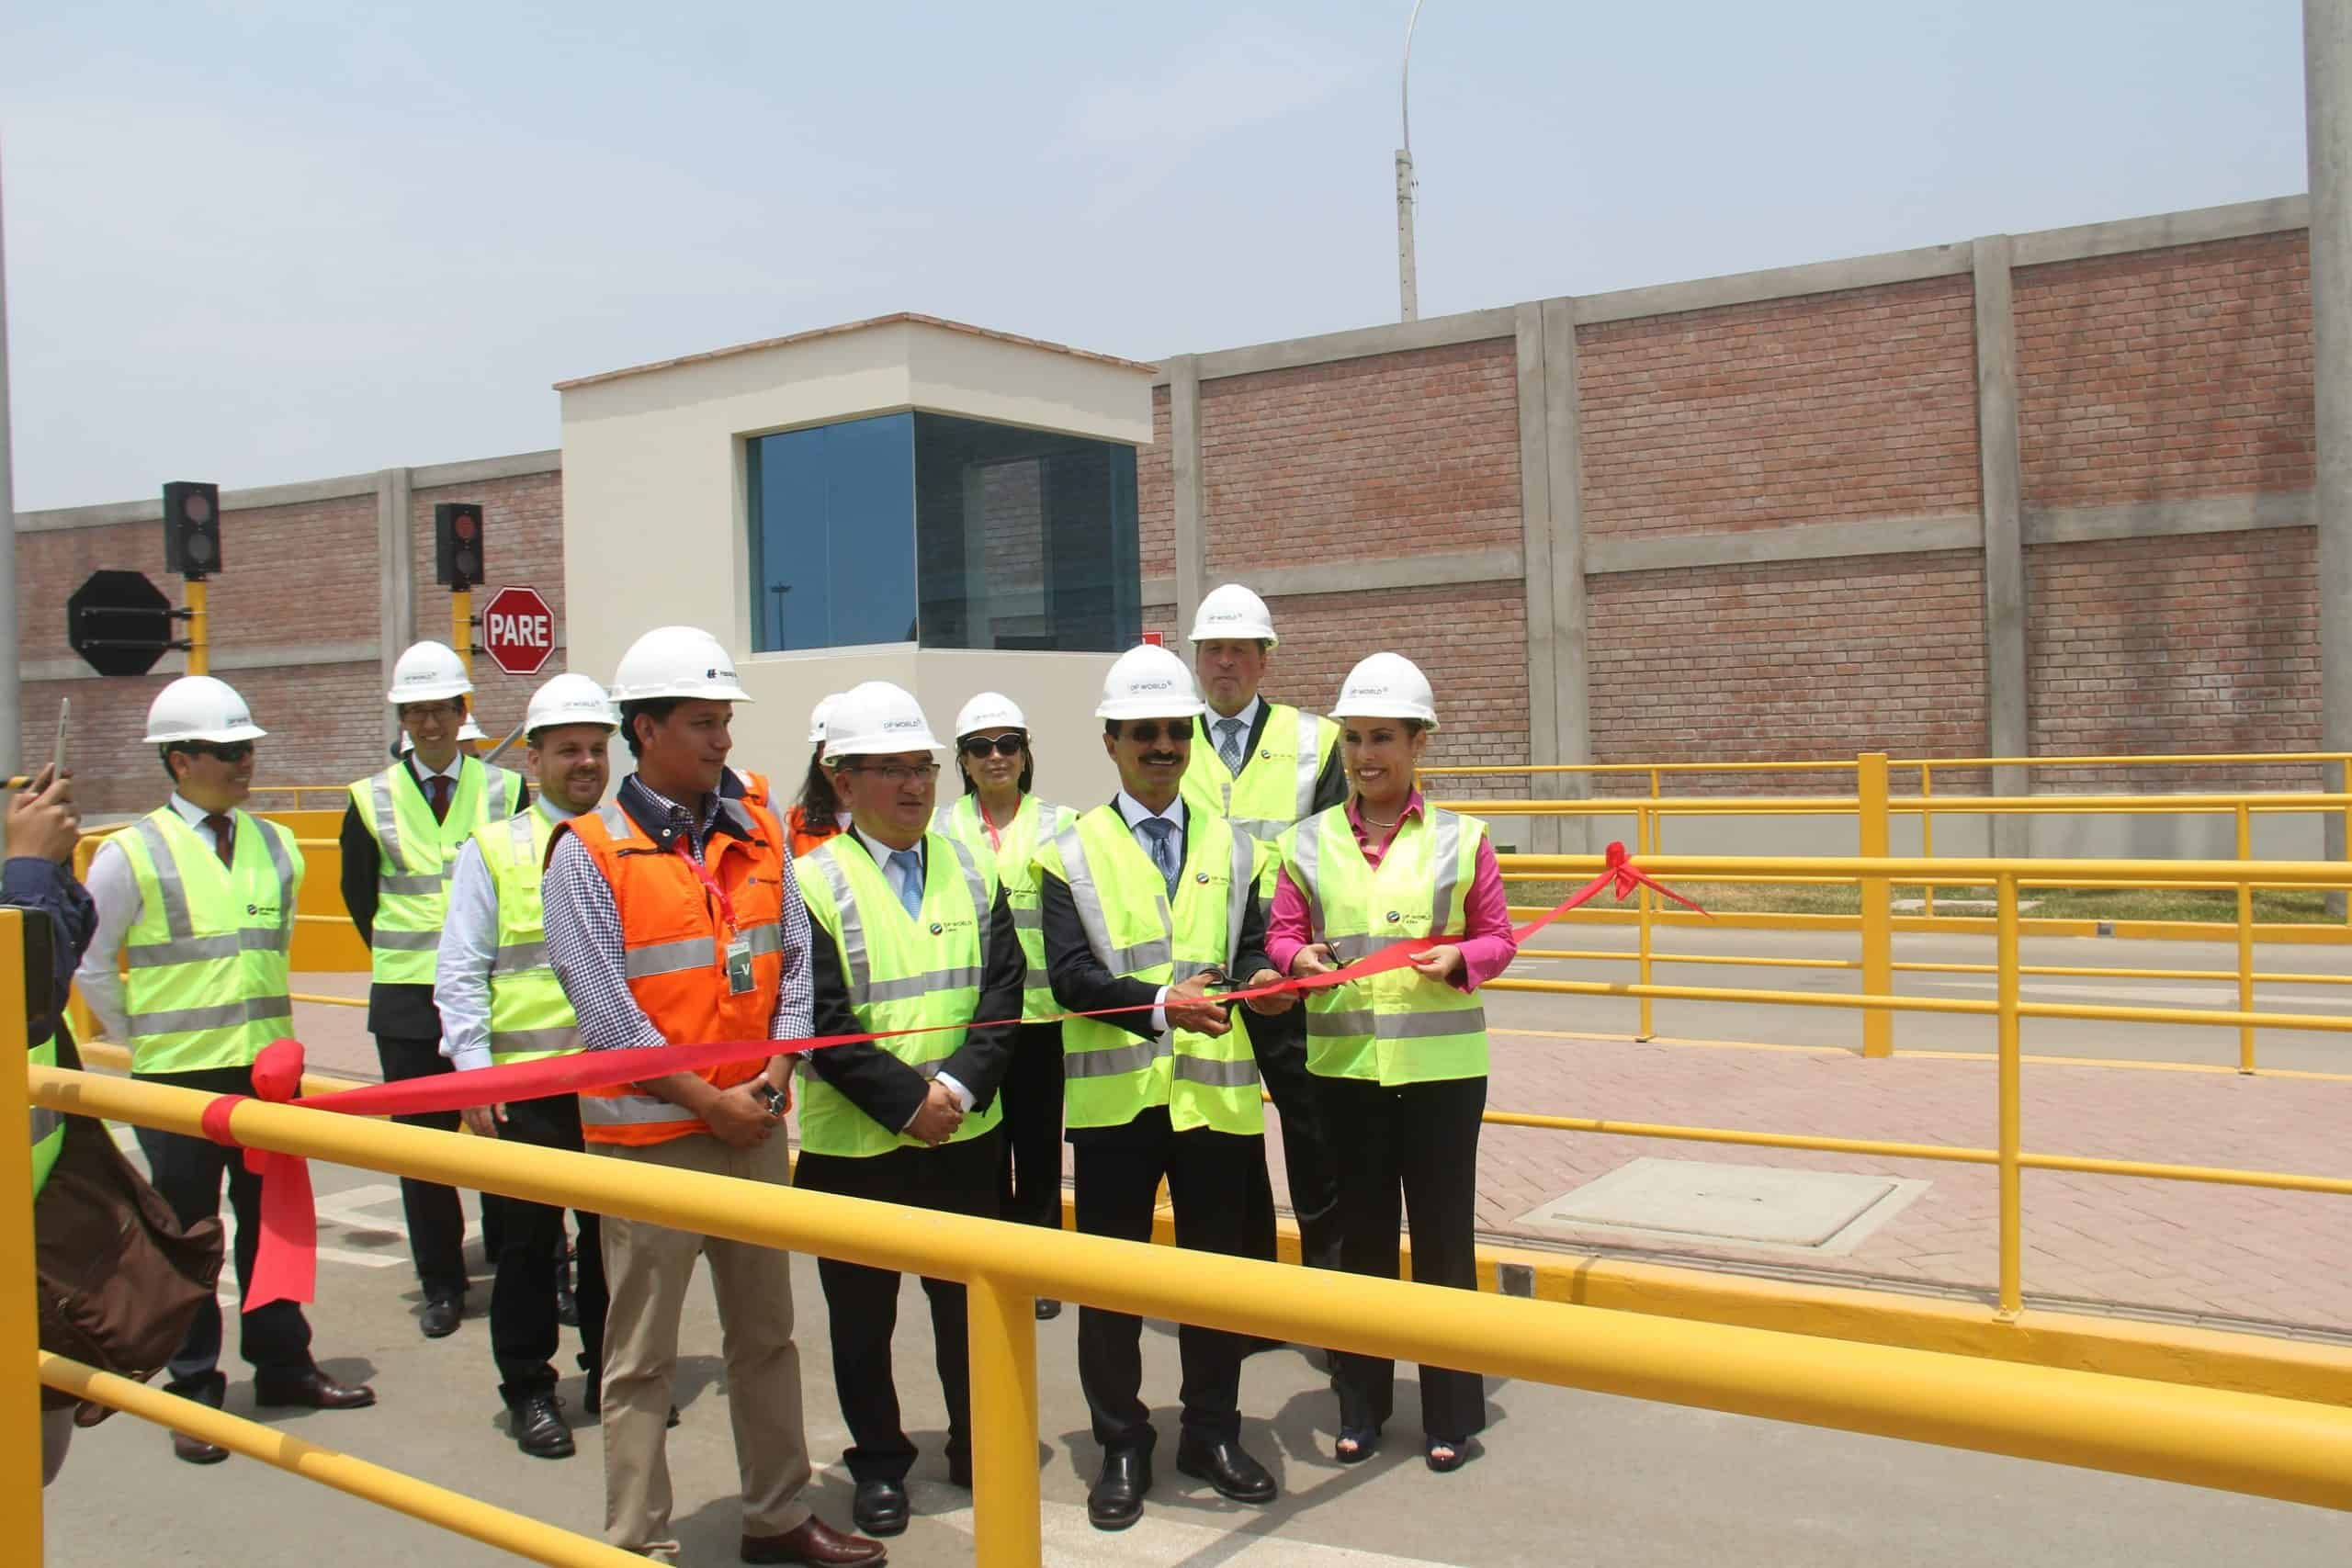 DP World opens logistics centre in Peru